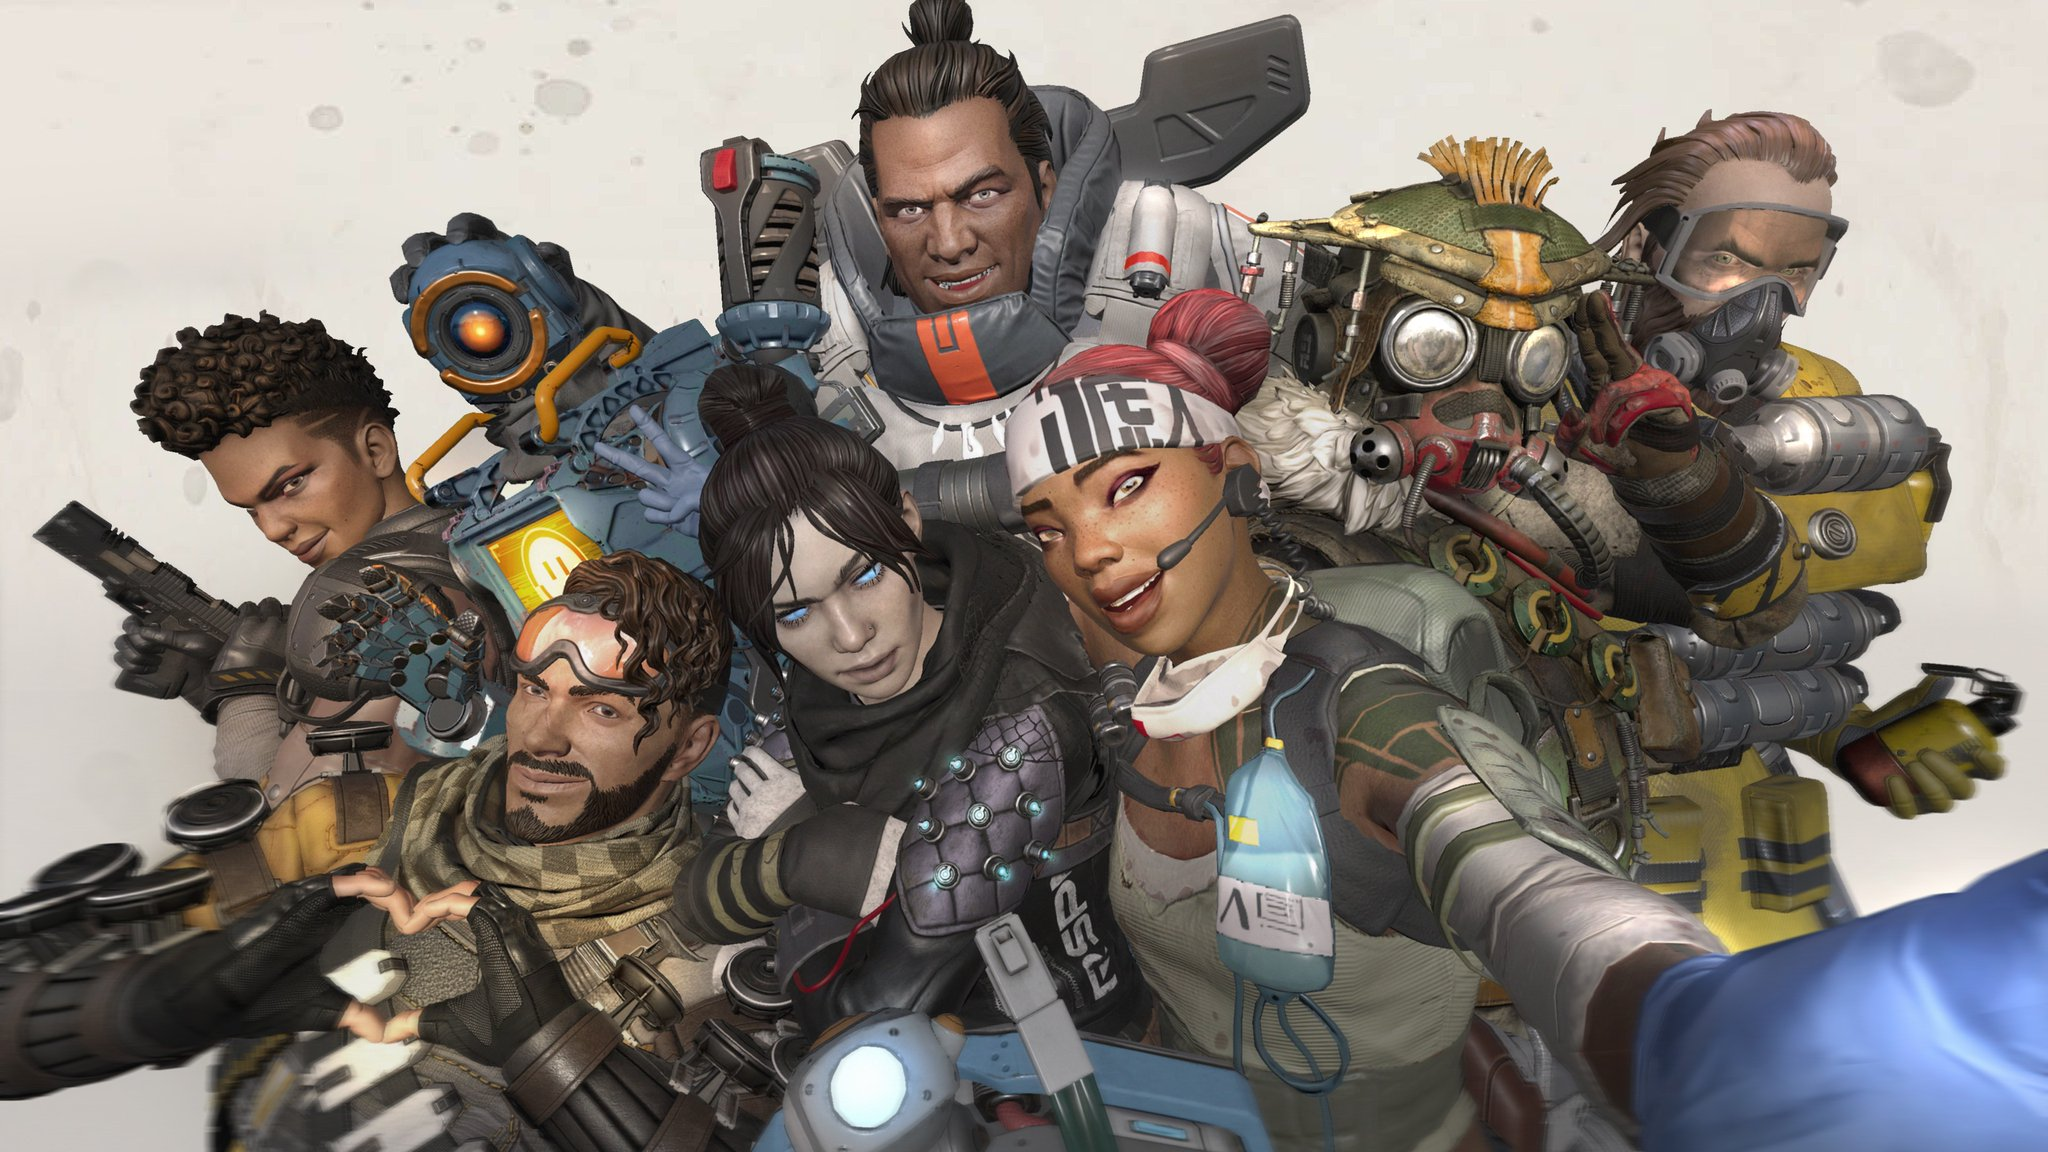 The characters of Apex Legends taking a selfie